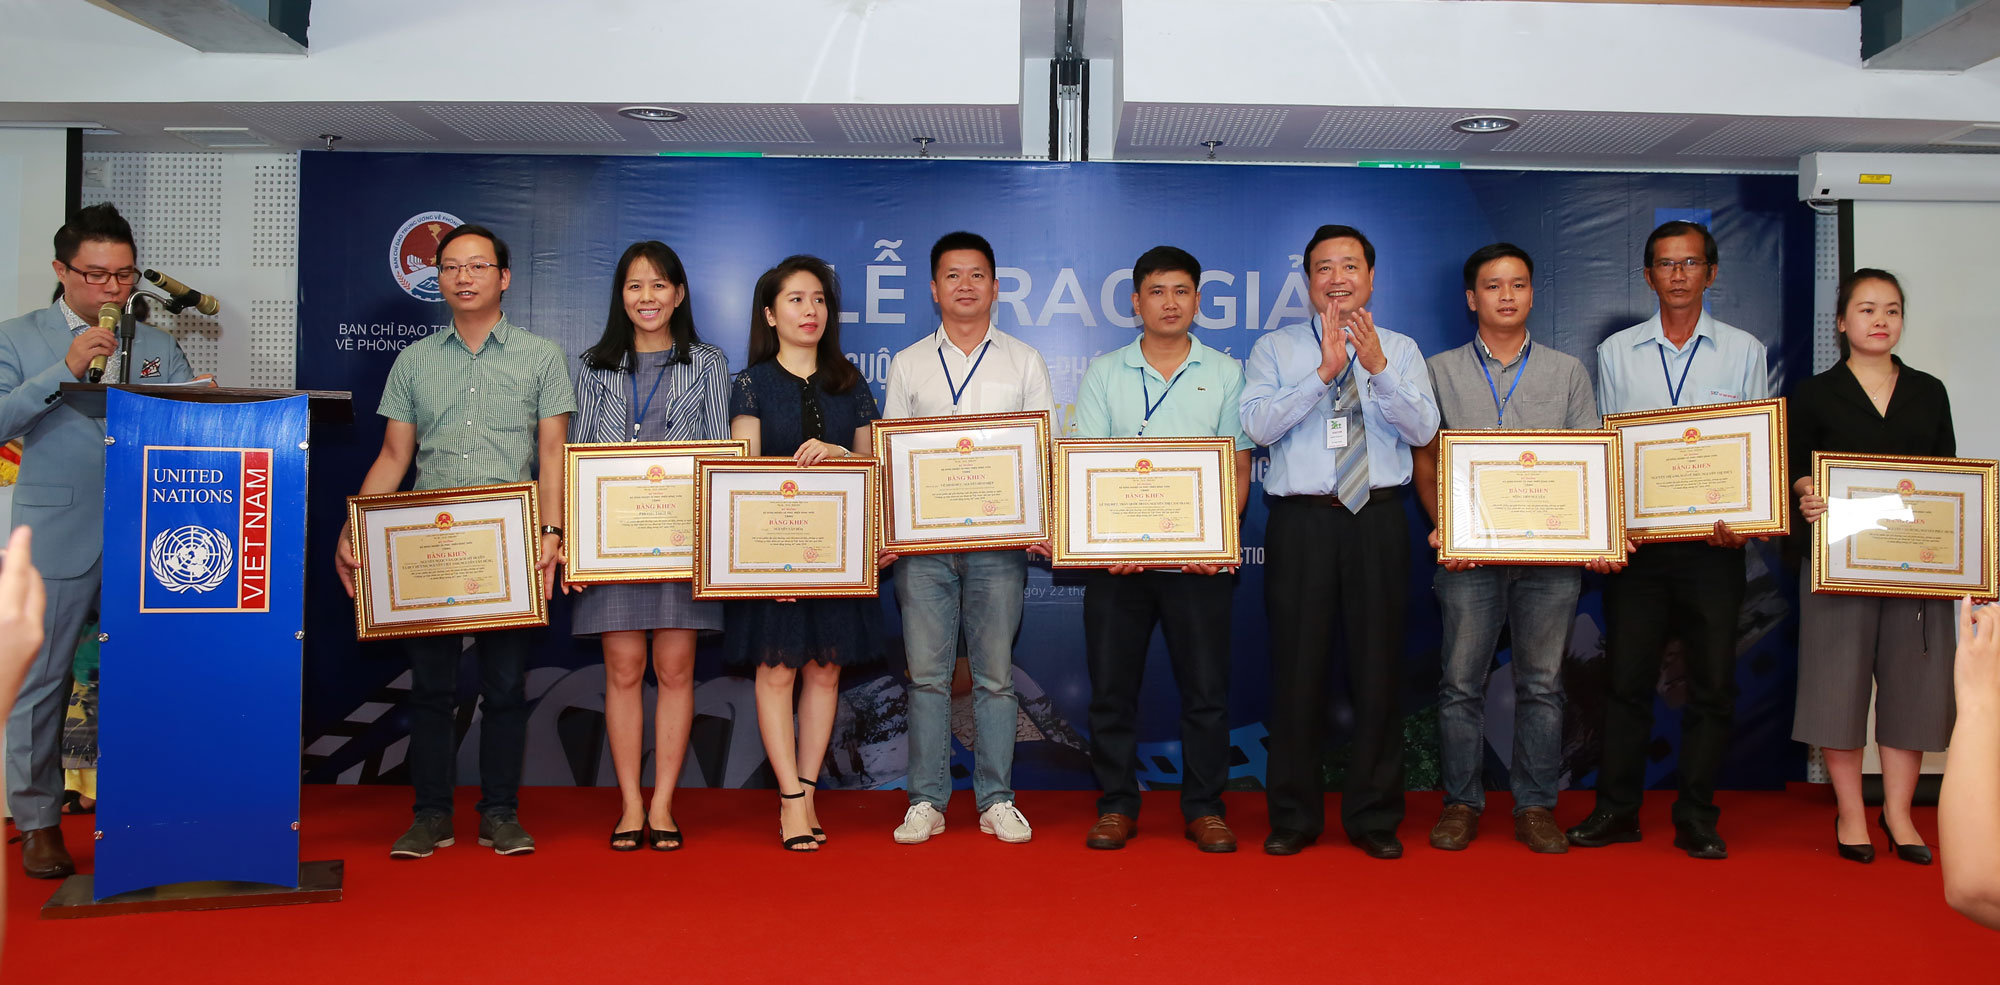 Award ceremony to honor winners from the video competition on disaster risk reduction